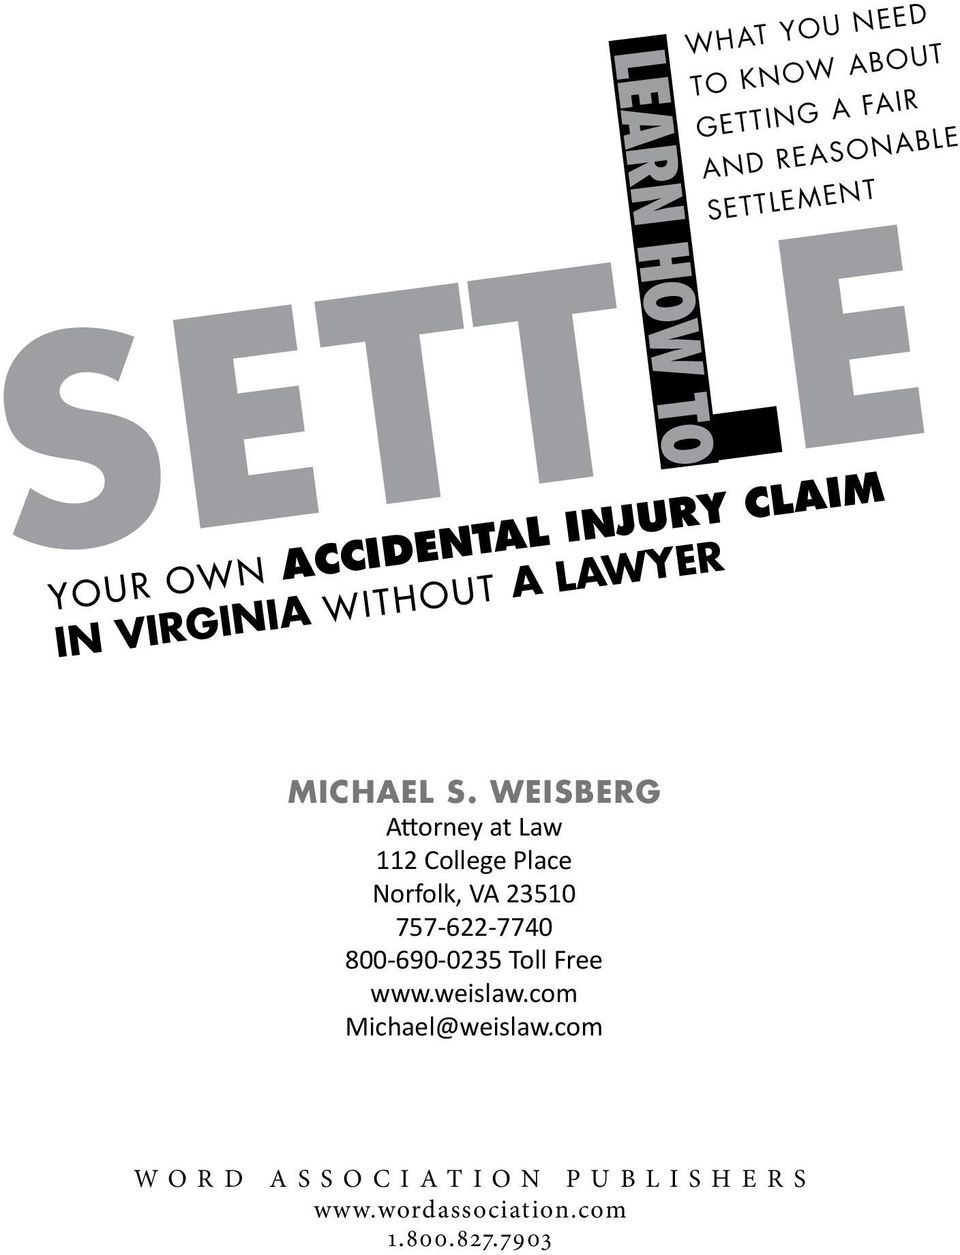 Weisberg Attorney at Law 112 College Place Norfolk, VA 23510 757-622-7740 800-690-0235 Toll